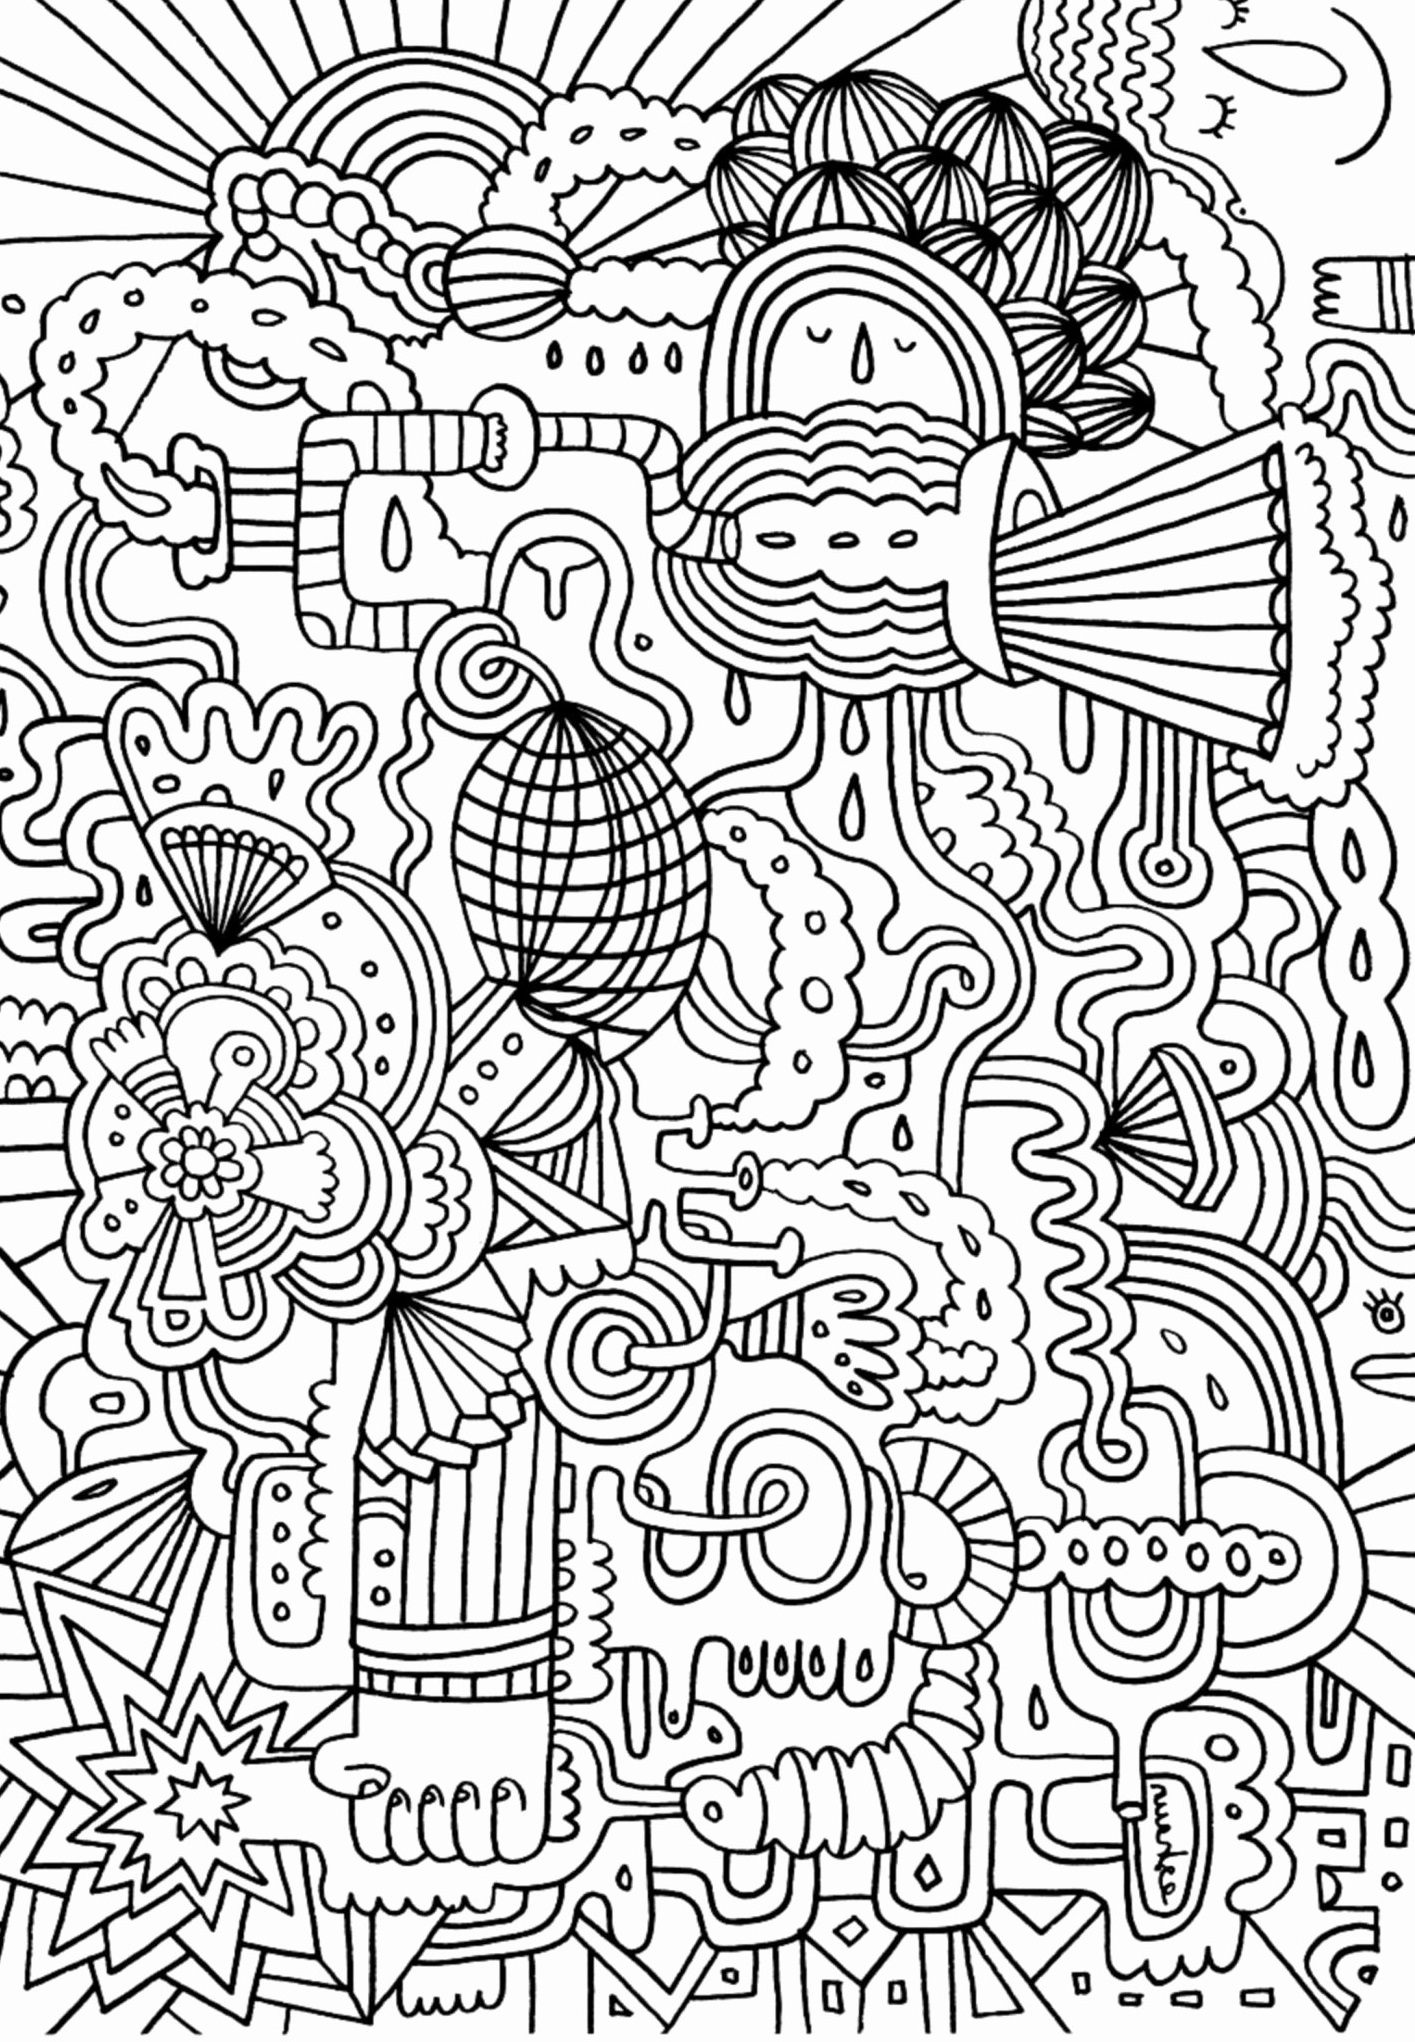 coloring pages for teens online | Complex Coloring Pages for Teens and Adults - Best ...